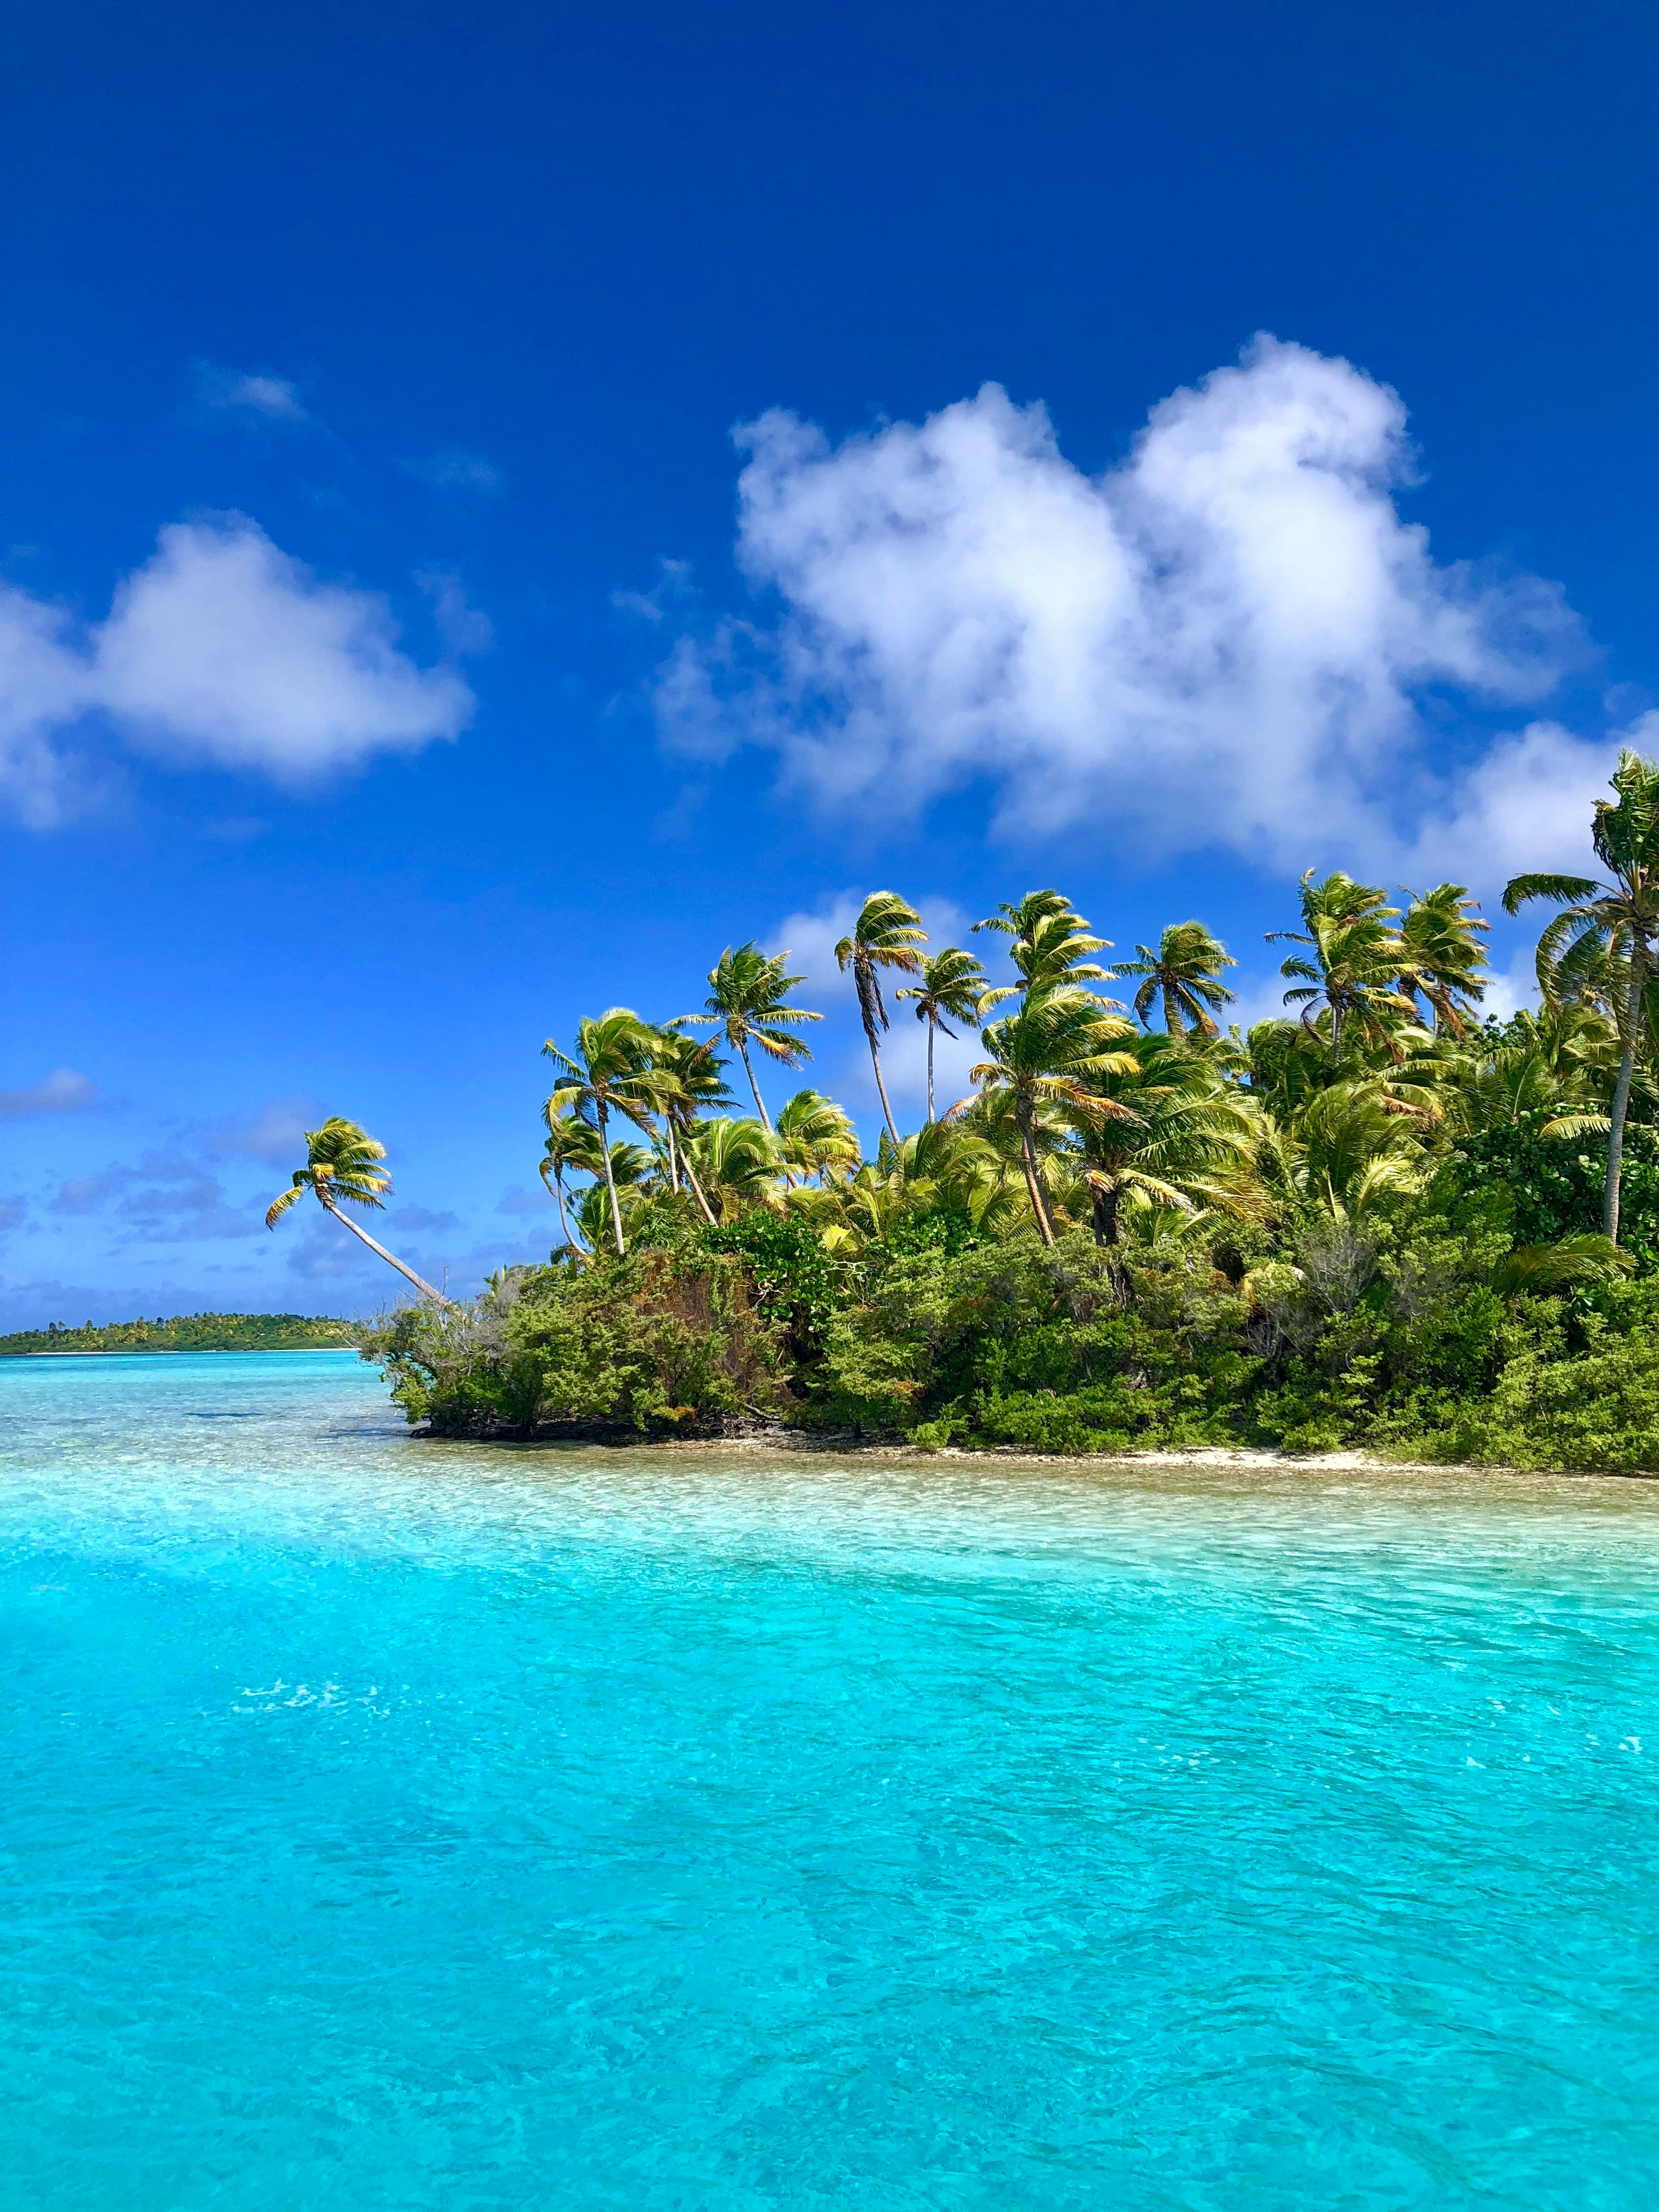 green palm trees on beach under blue sky and white clouds